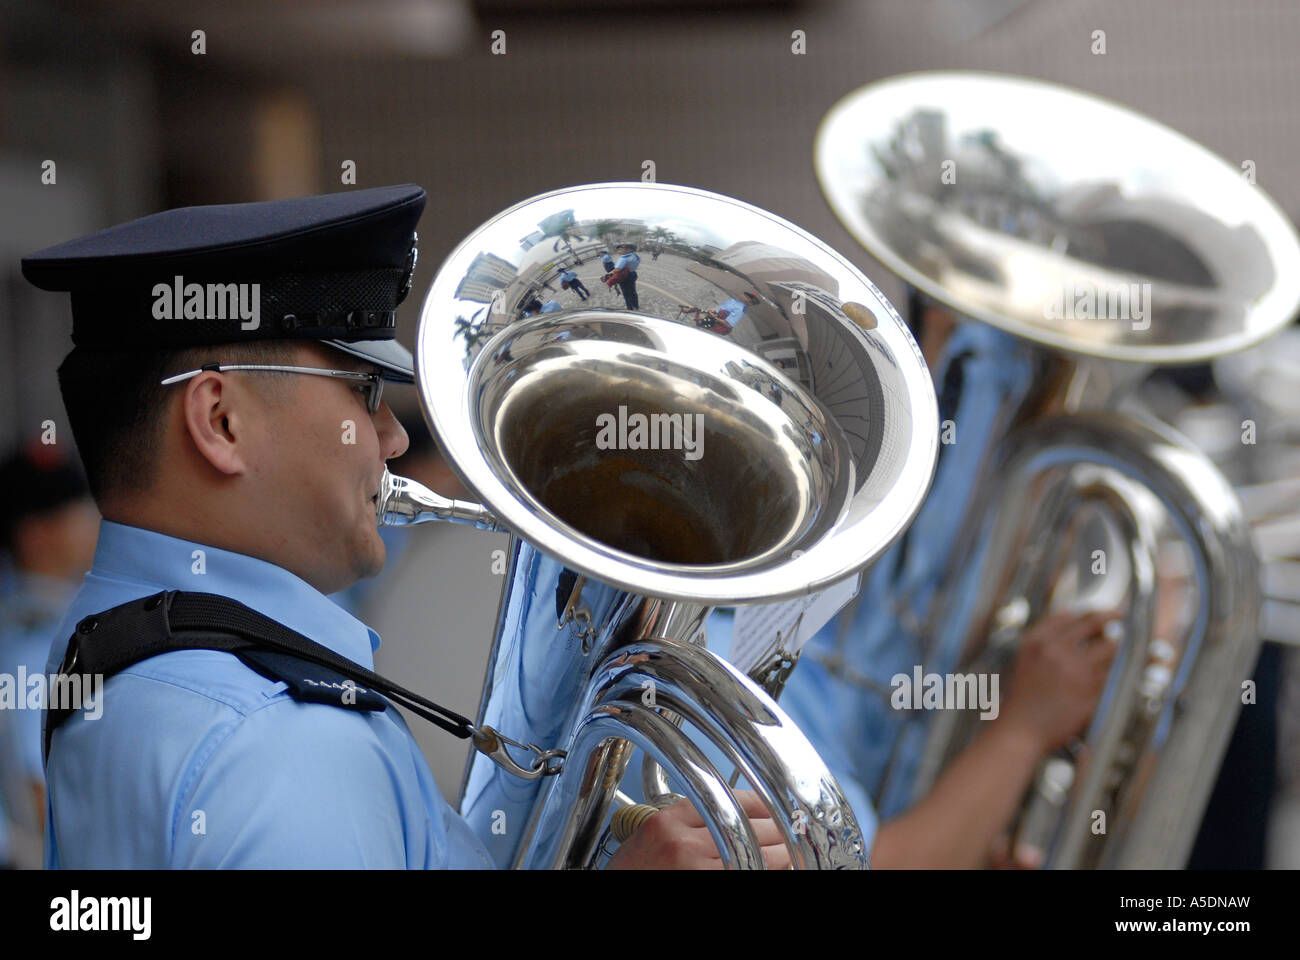 Chinese policemen in marching band uniforms playing trombones during Chinese  Lunar New Year celebrations in Kowloon c56069343